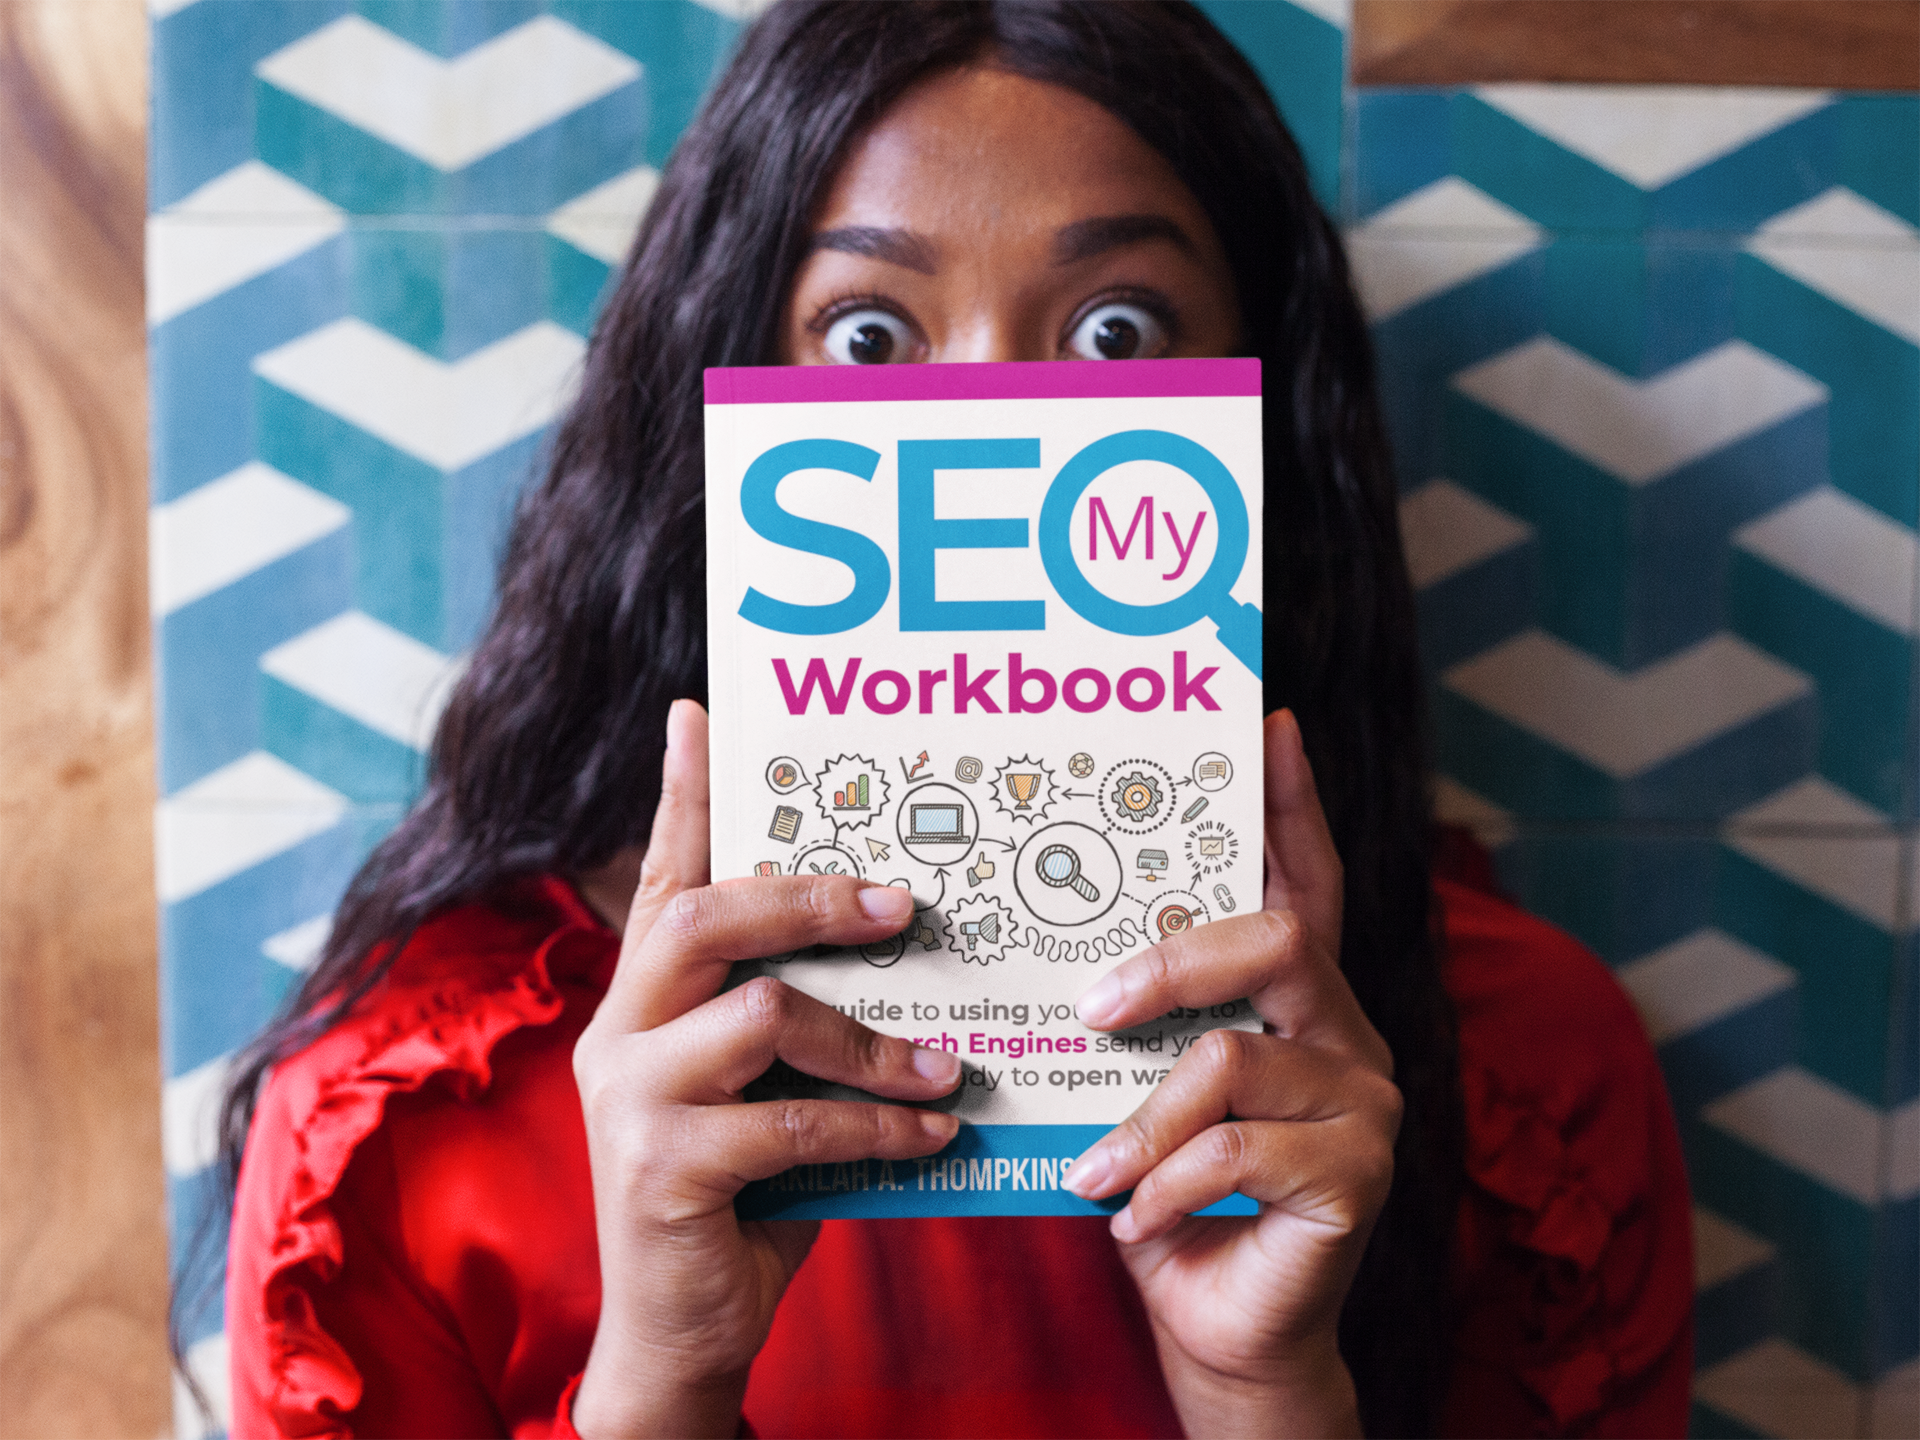 My SEO Workbook #1 guide for SEO tips and learn SEO in 2019